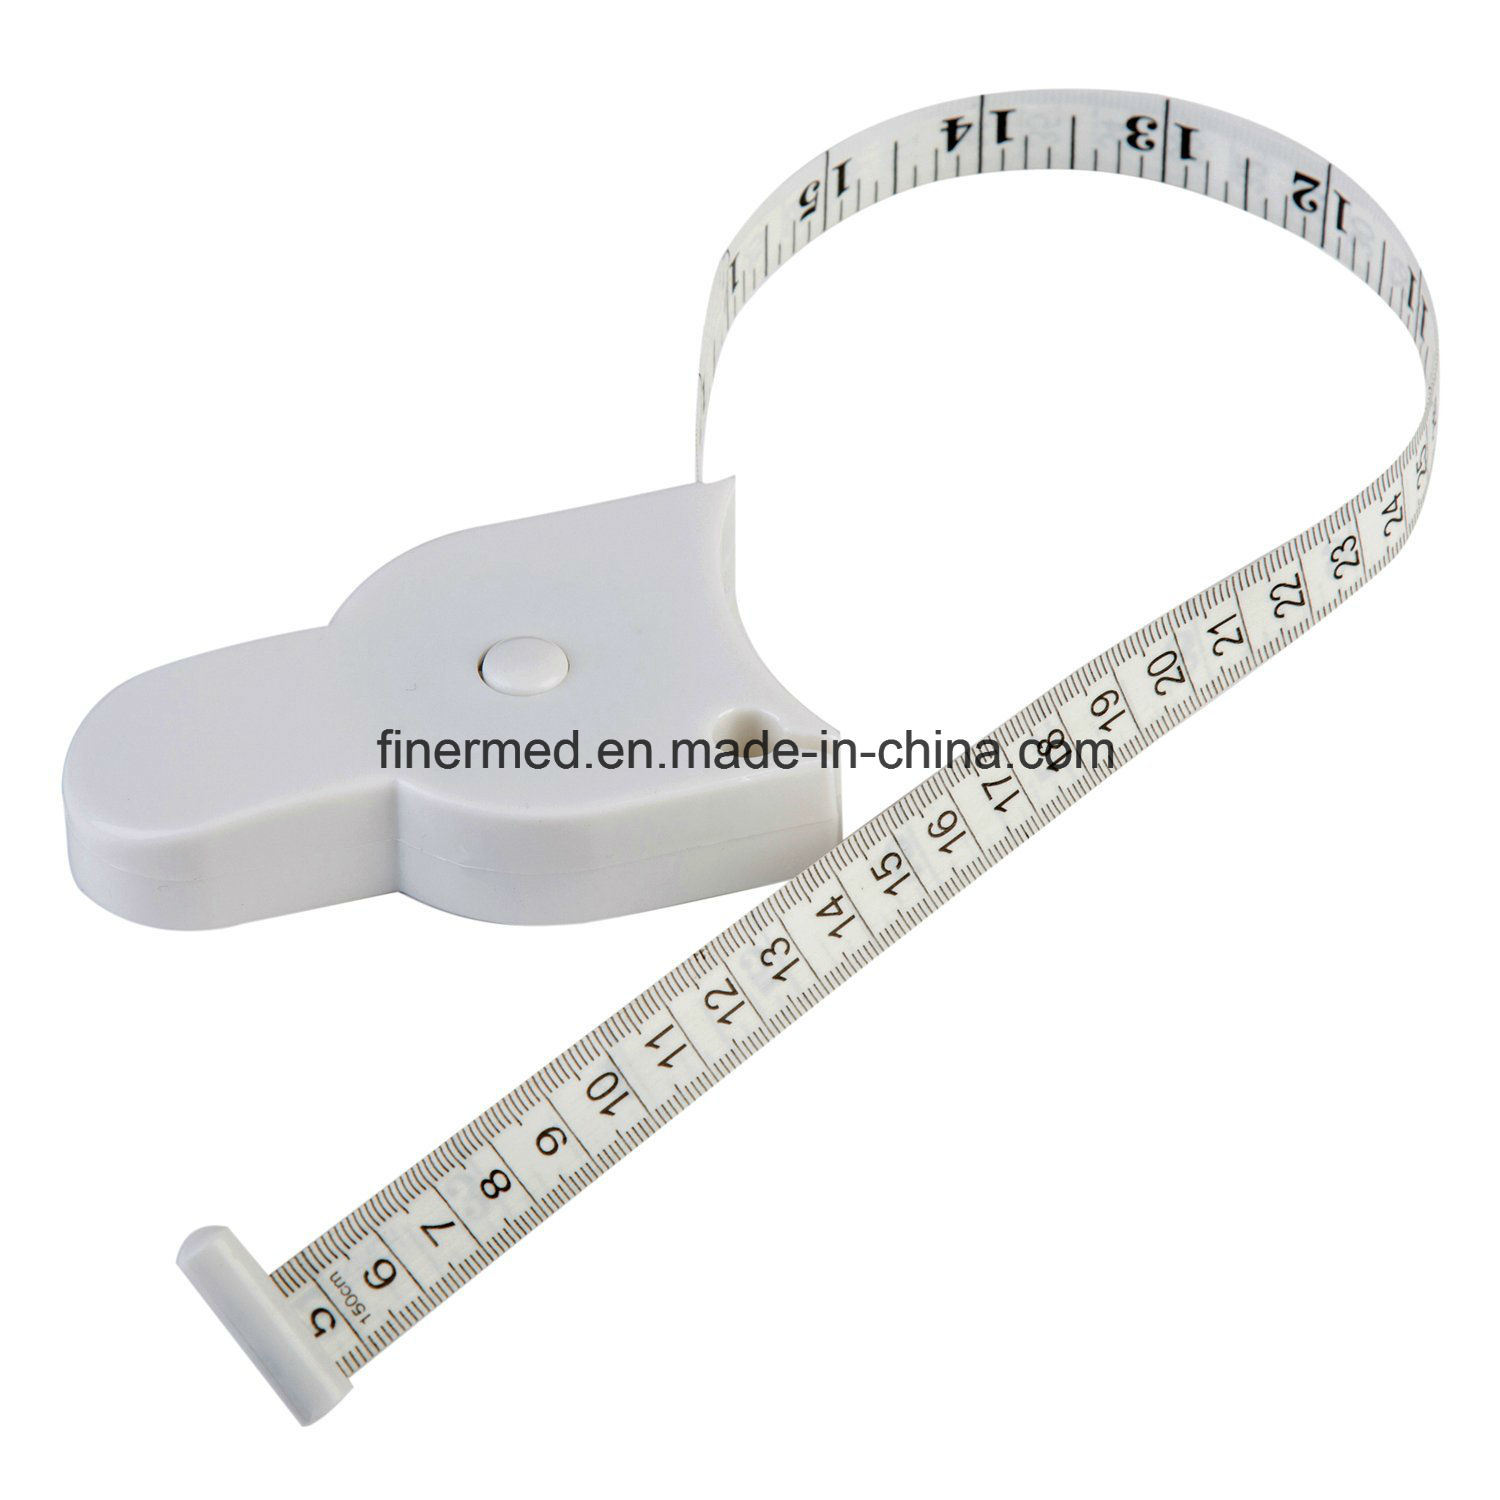 BMI Dial Body Mass Index Measure Tape